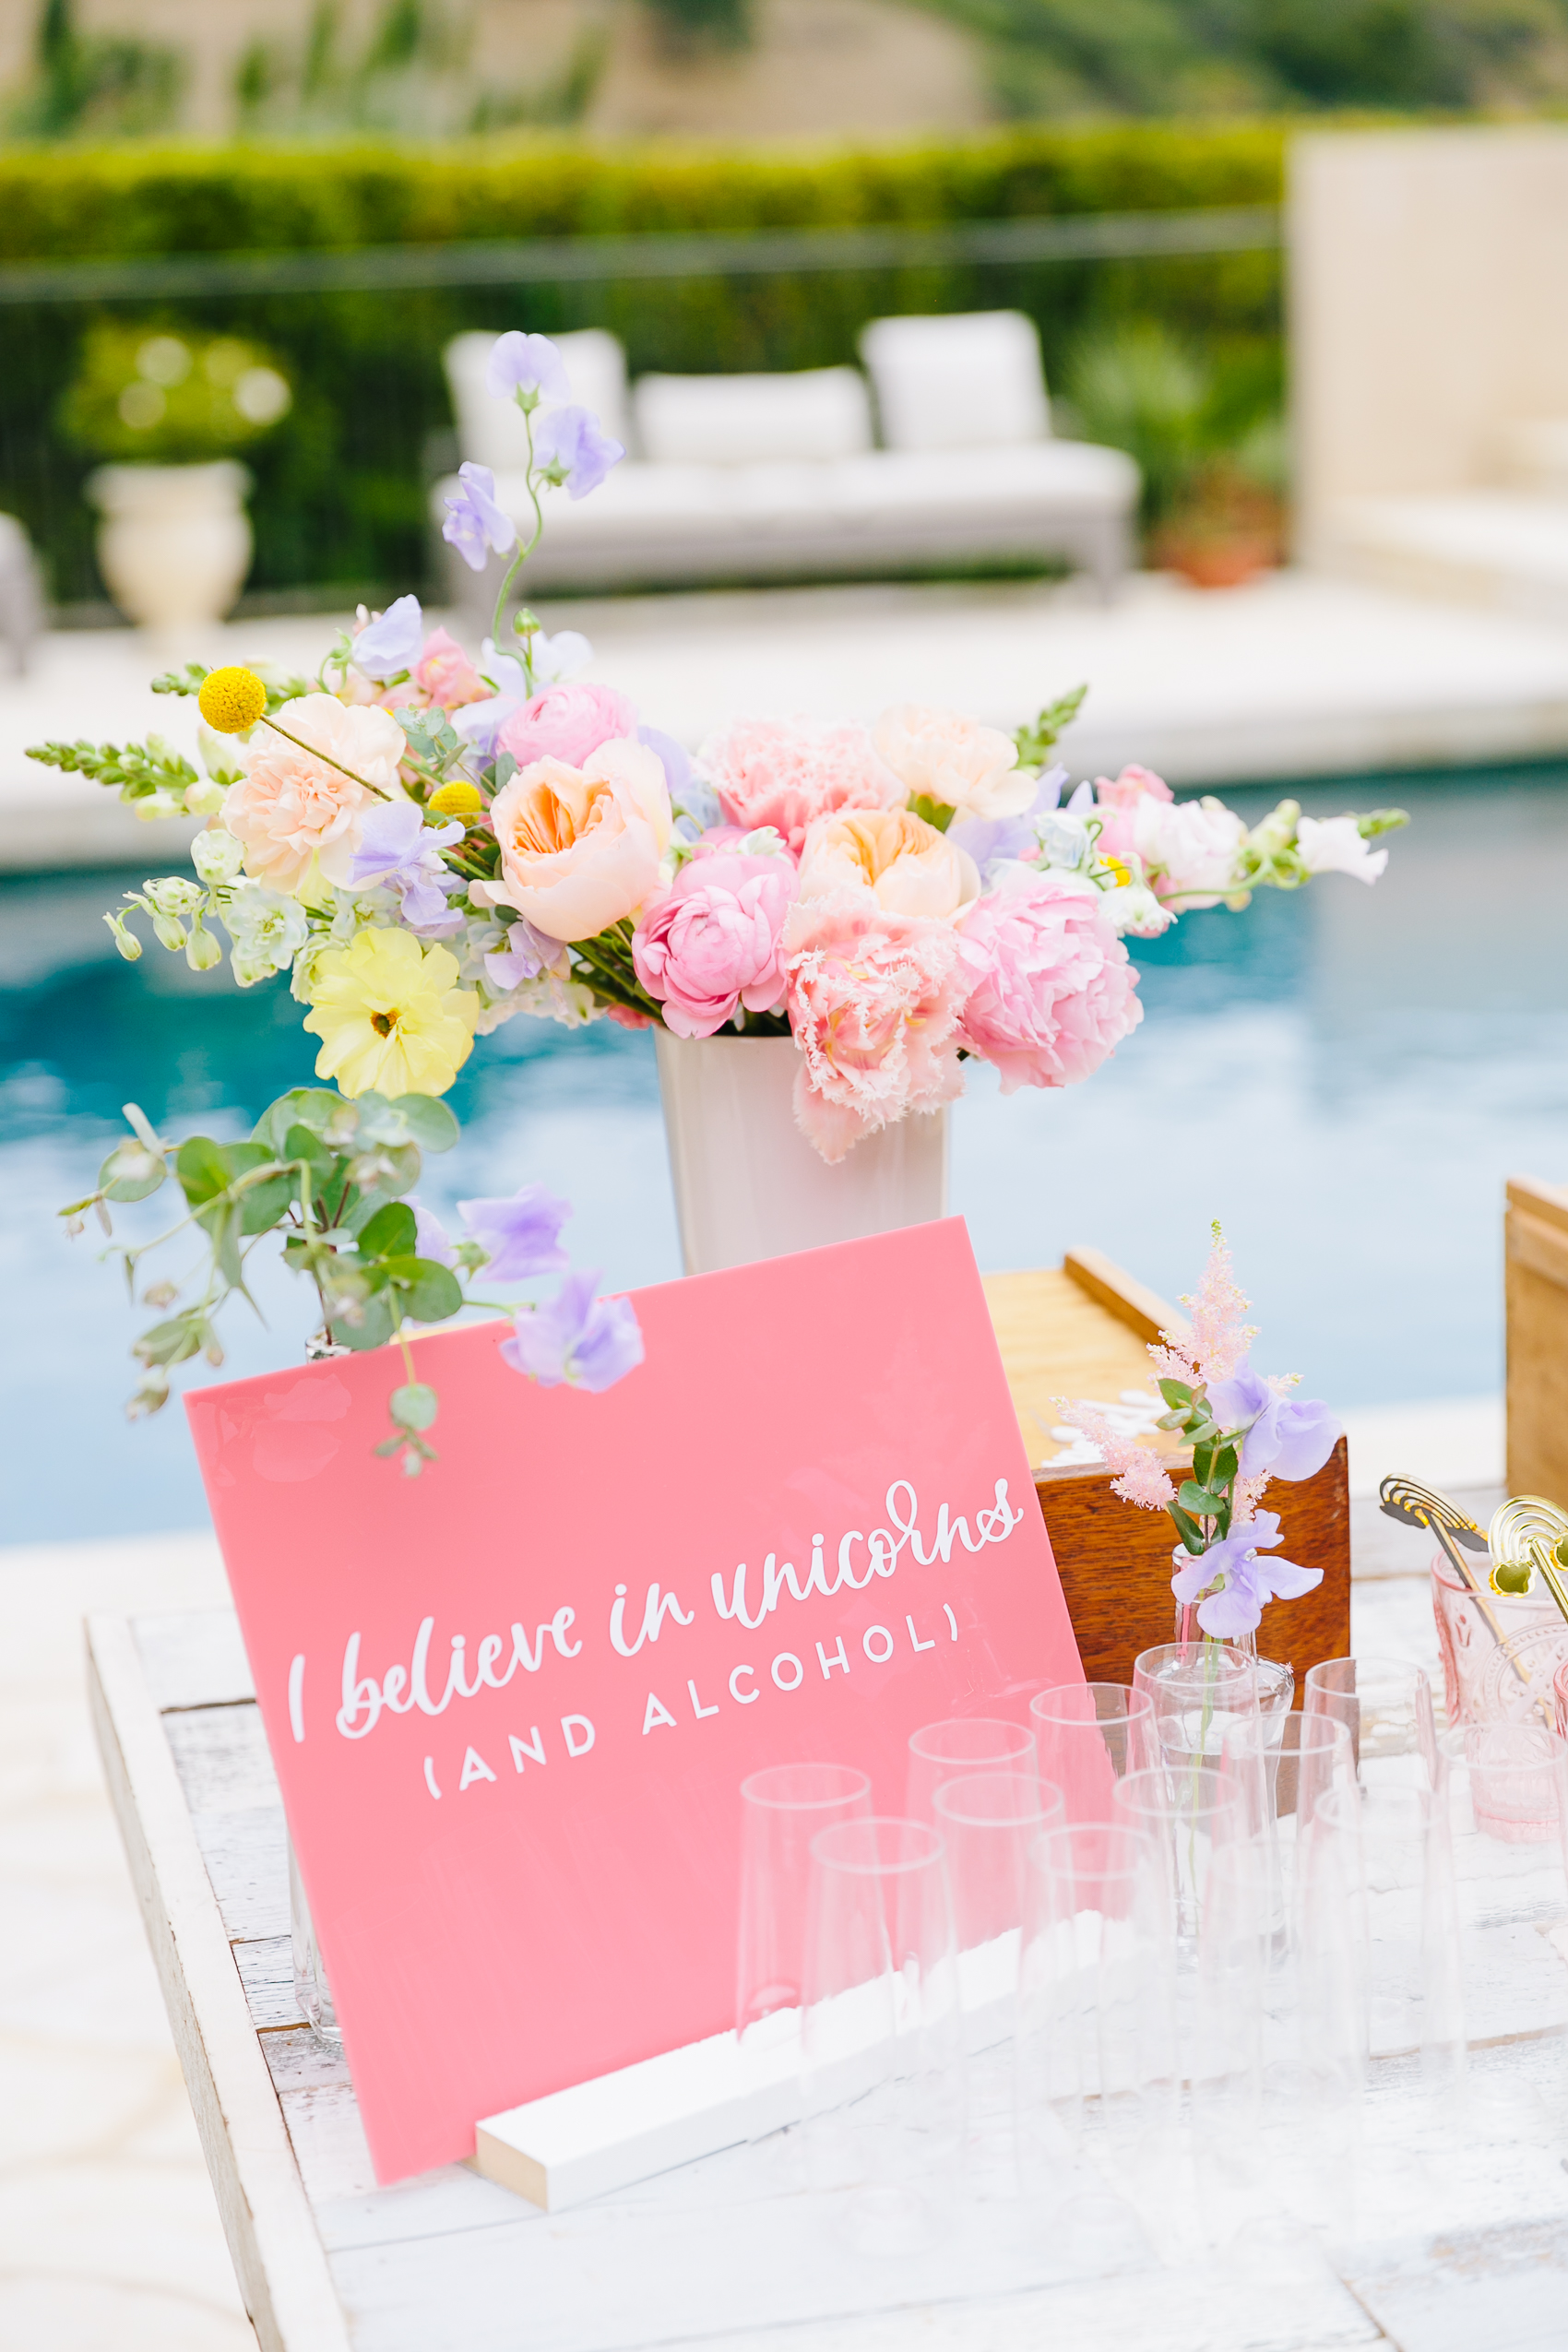 Los_Angeles_Family_Photographer_Luxury_Childrens_Party_Beverly_Hills_Unicorn_Birthday_Party-0034.jpg